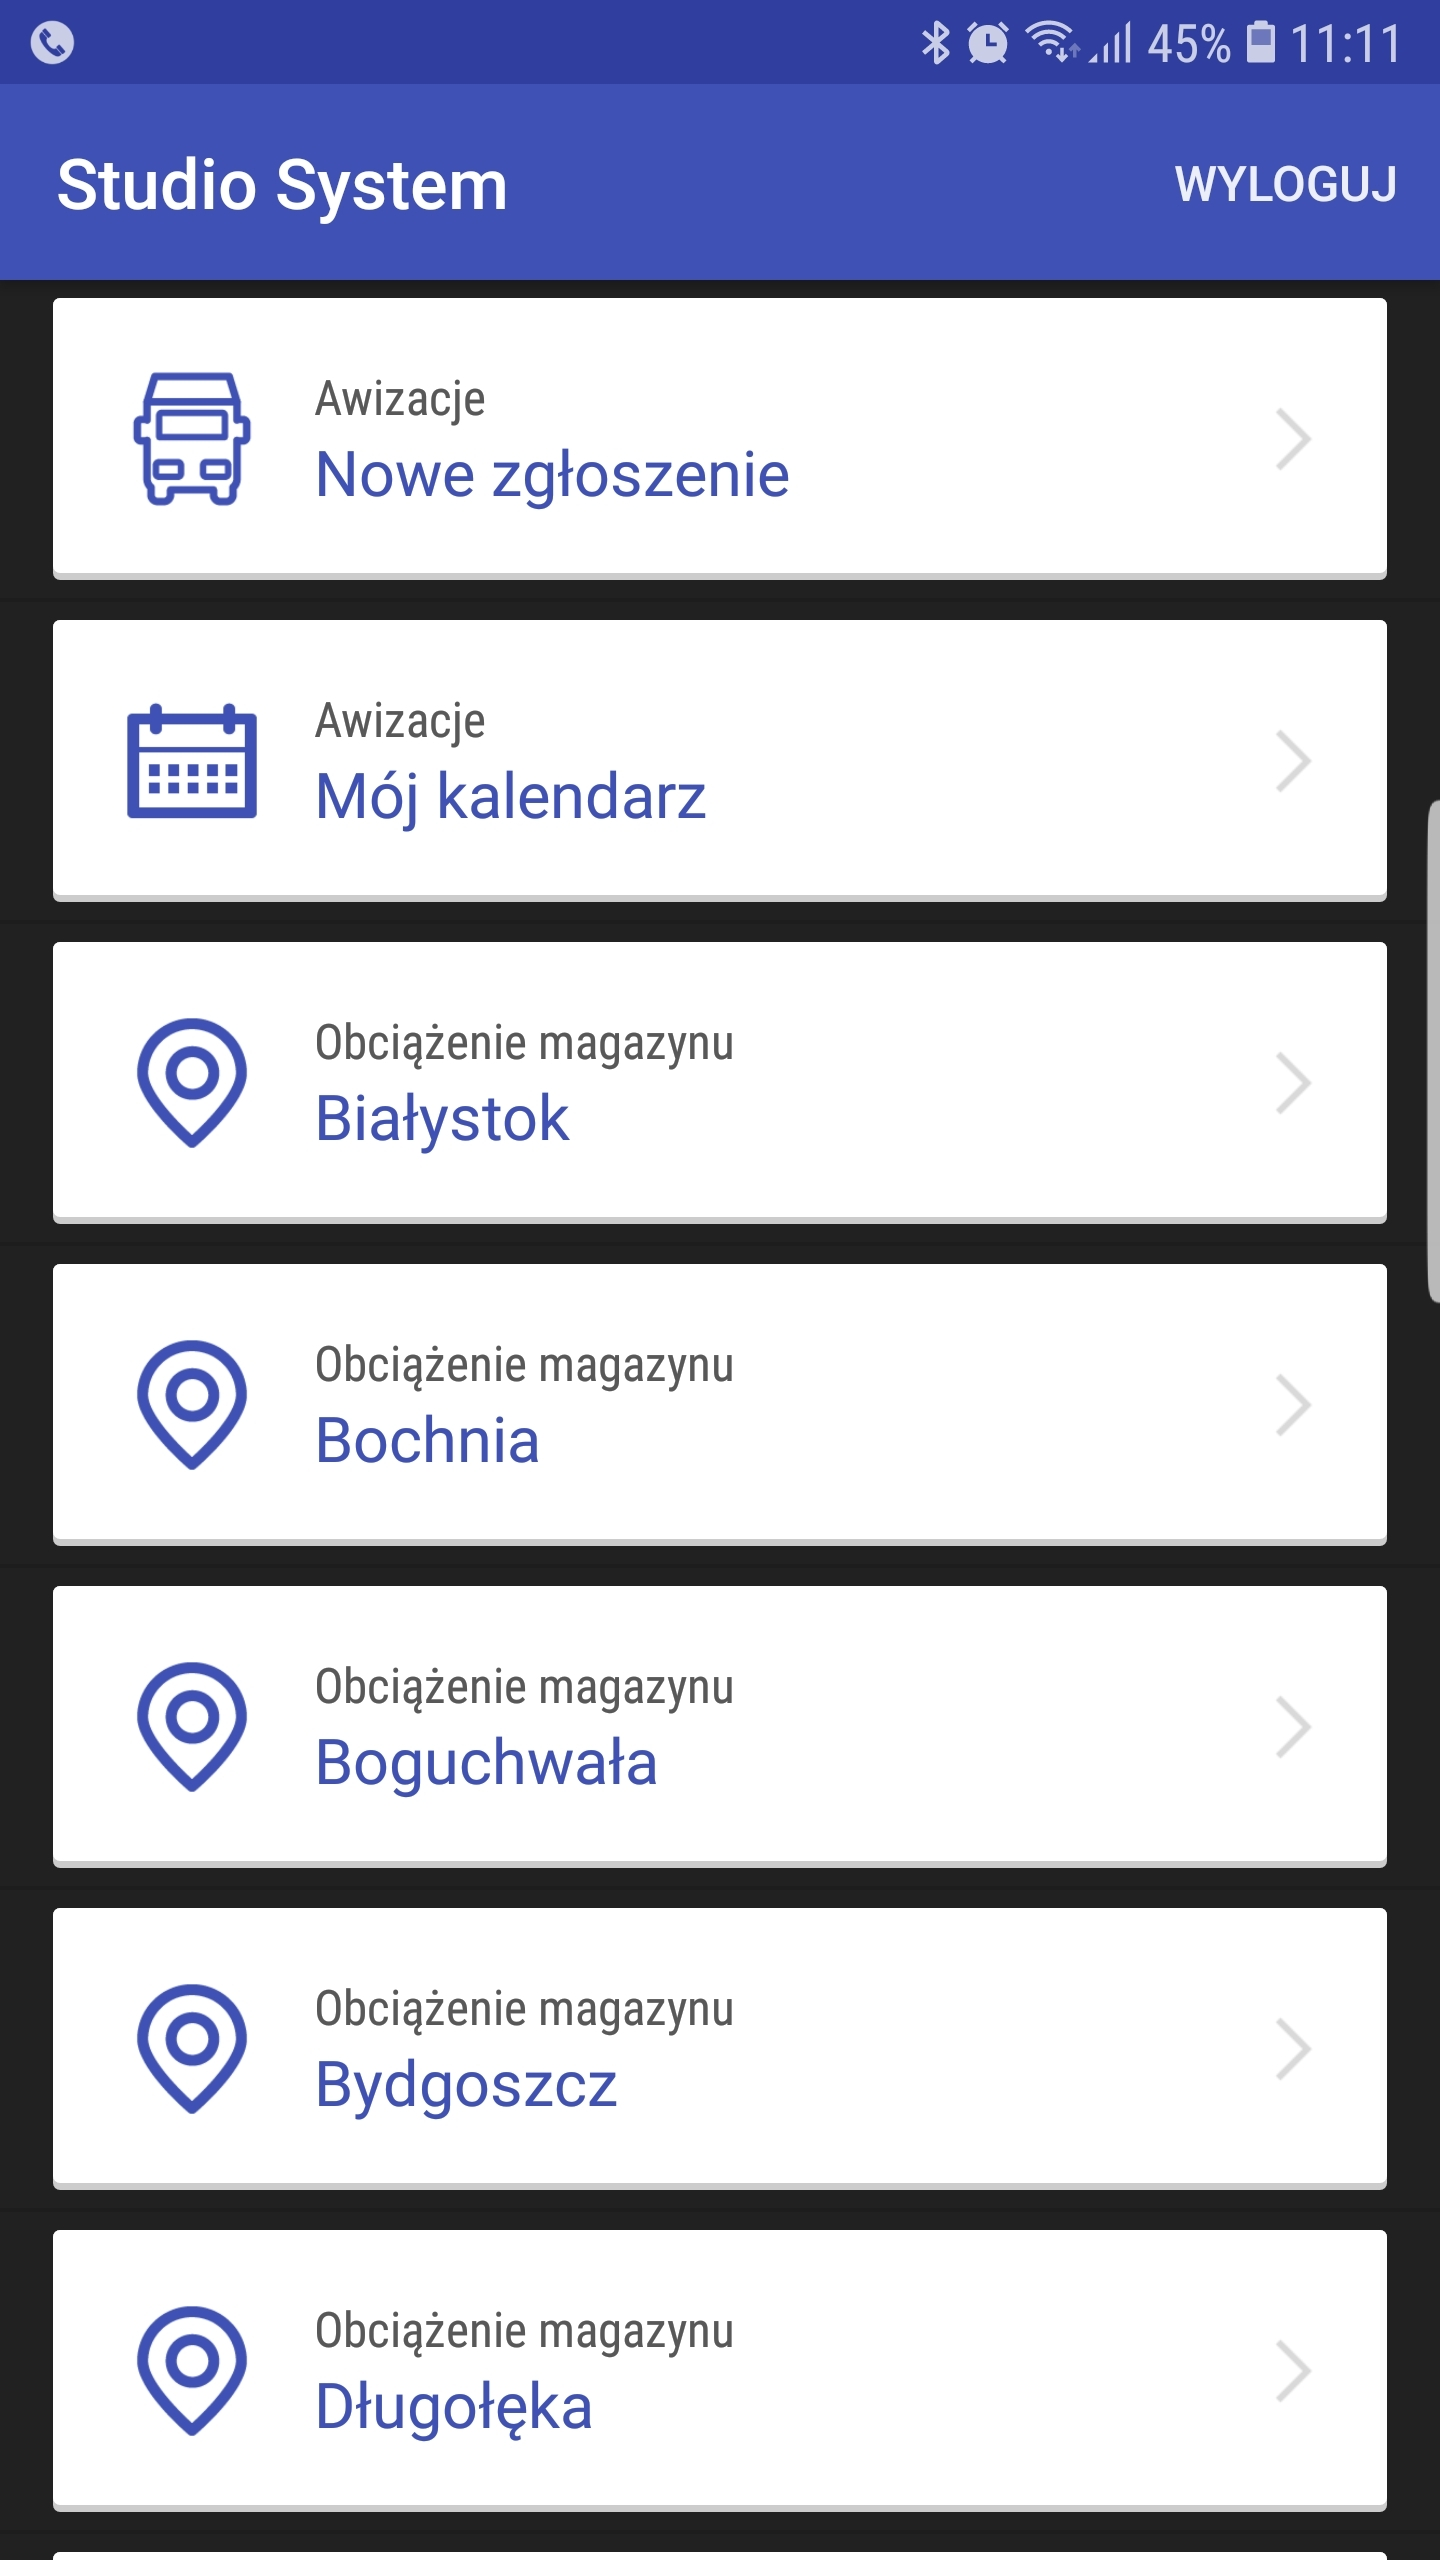 Awizacje Android